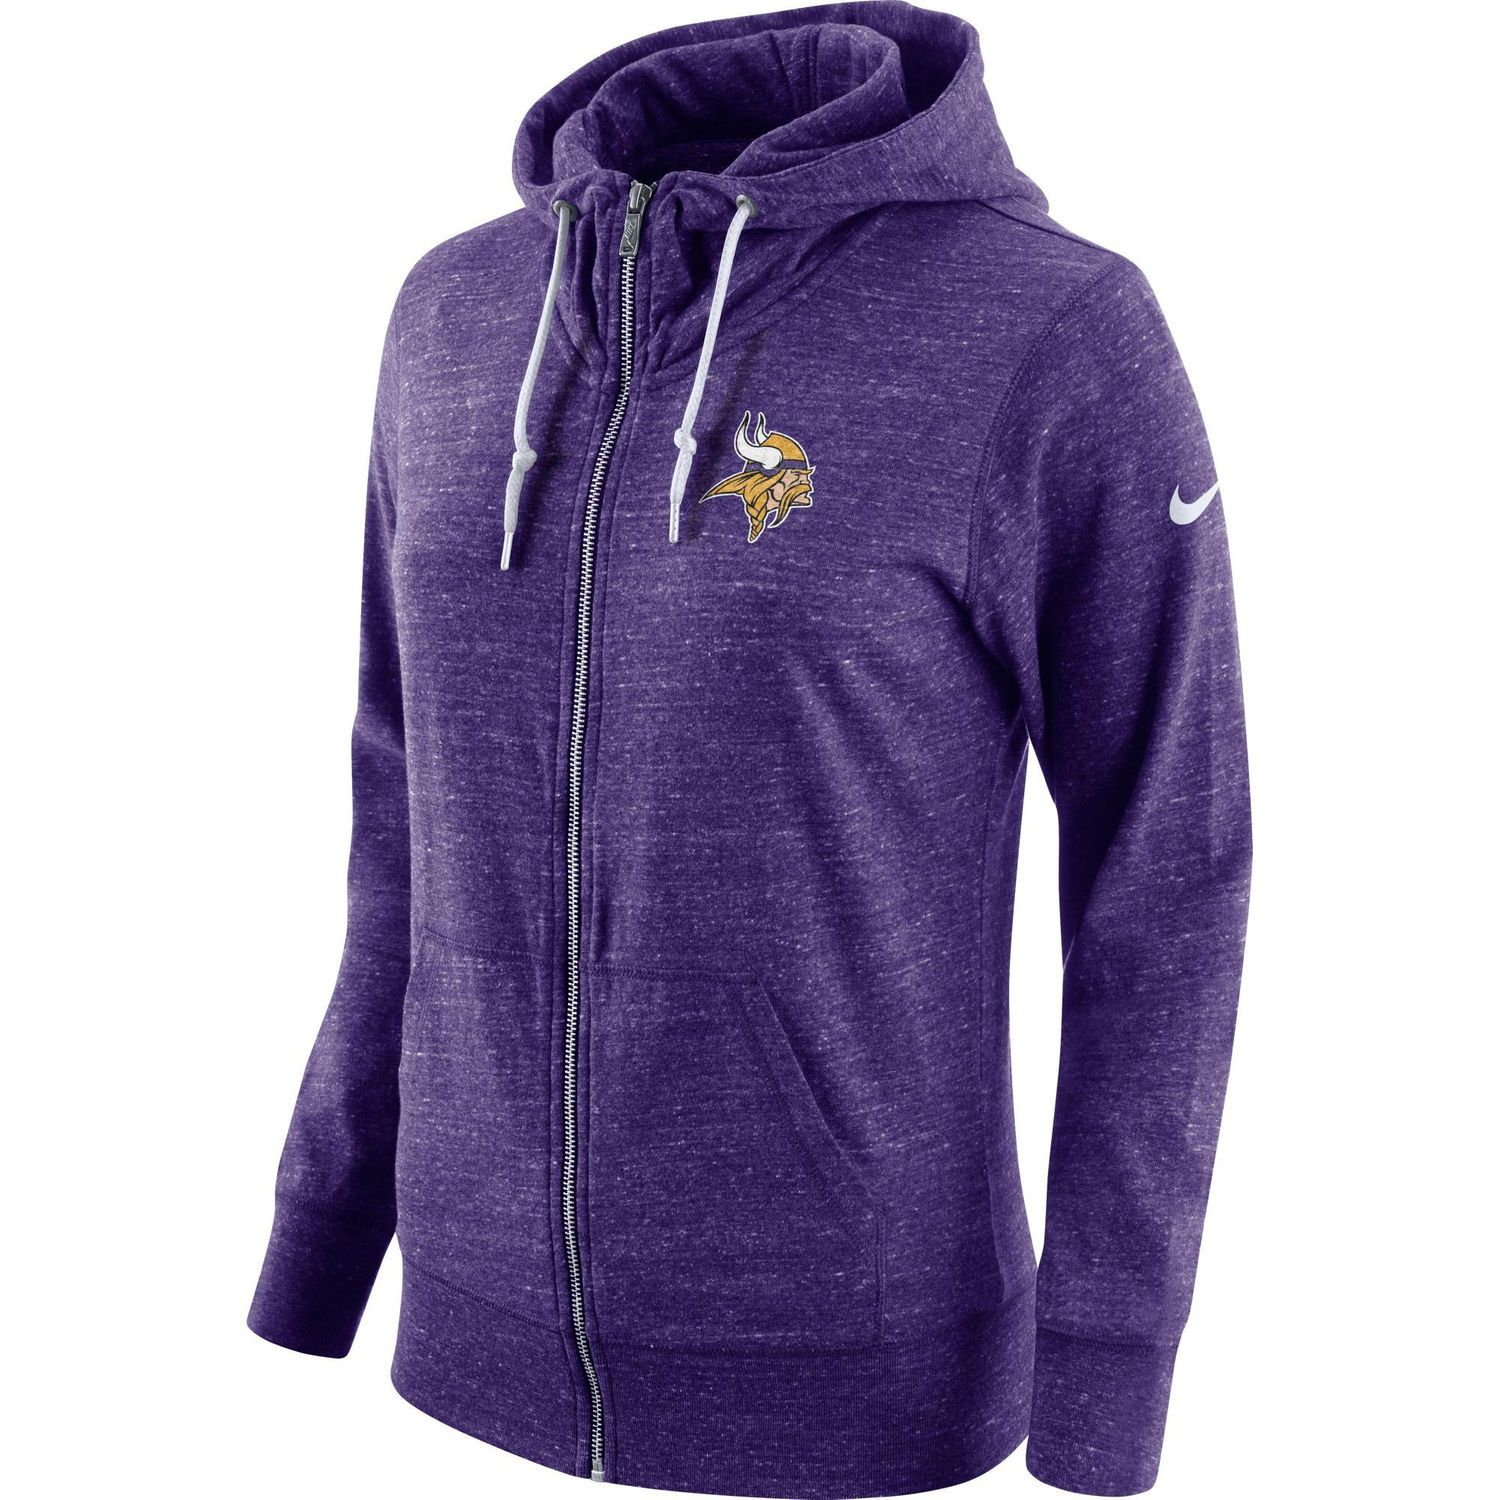 reputable site bb168 88003 Women's Nike Purple Minnesota Vikings Tailgate Vintage Full ...